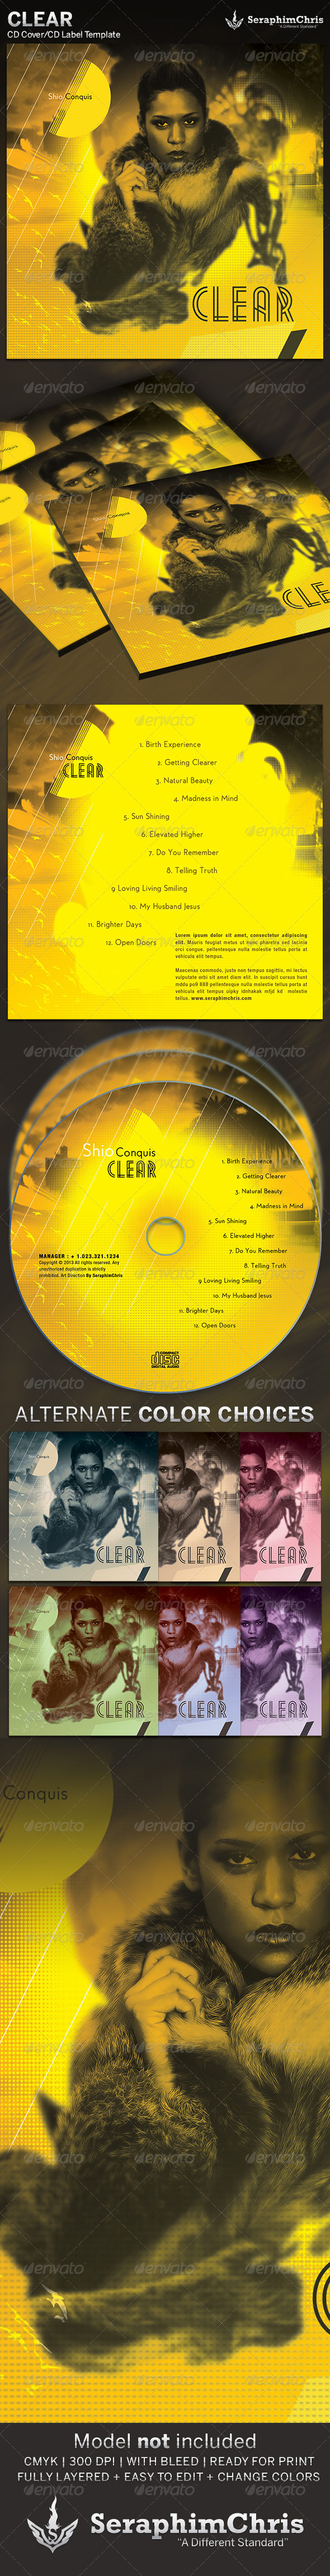 Clear: CD Cover Artwork Template - CD & DVD artwork Print Templates